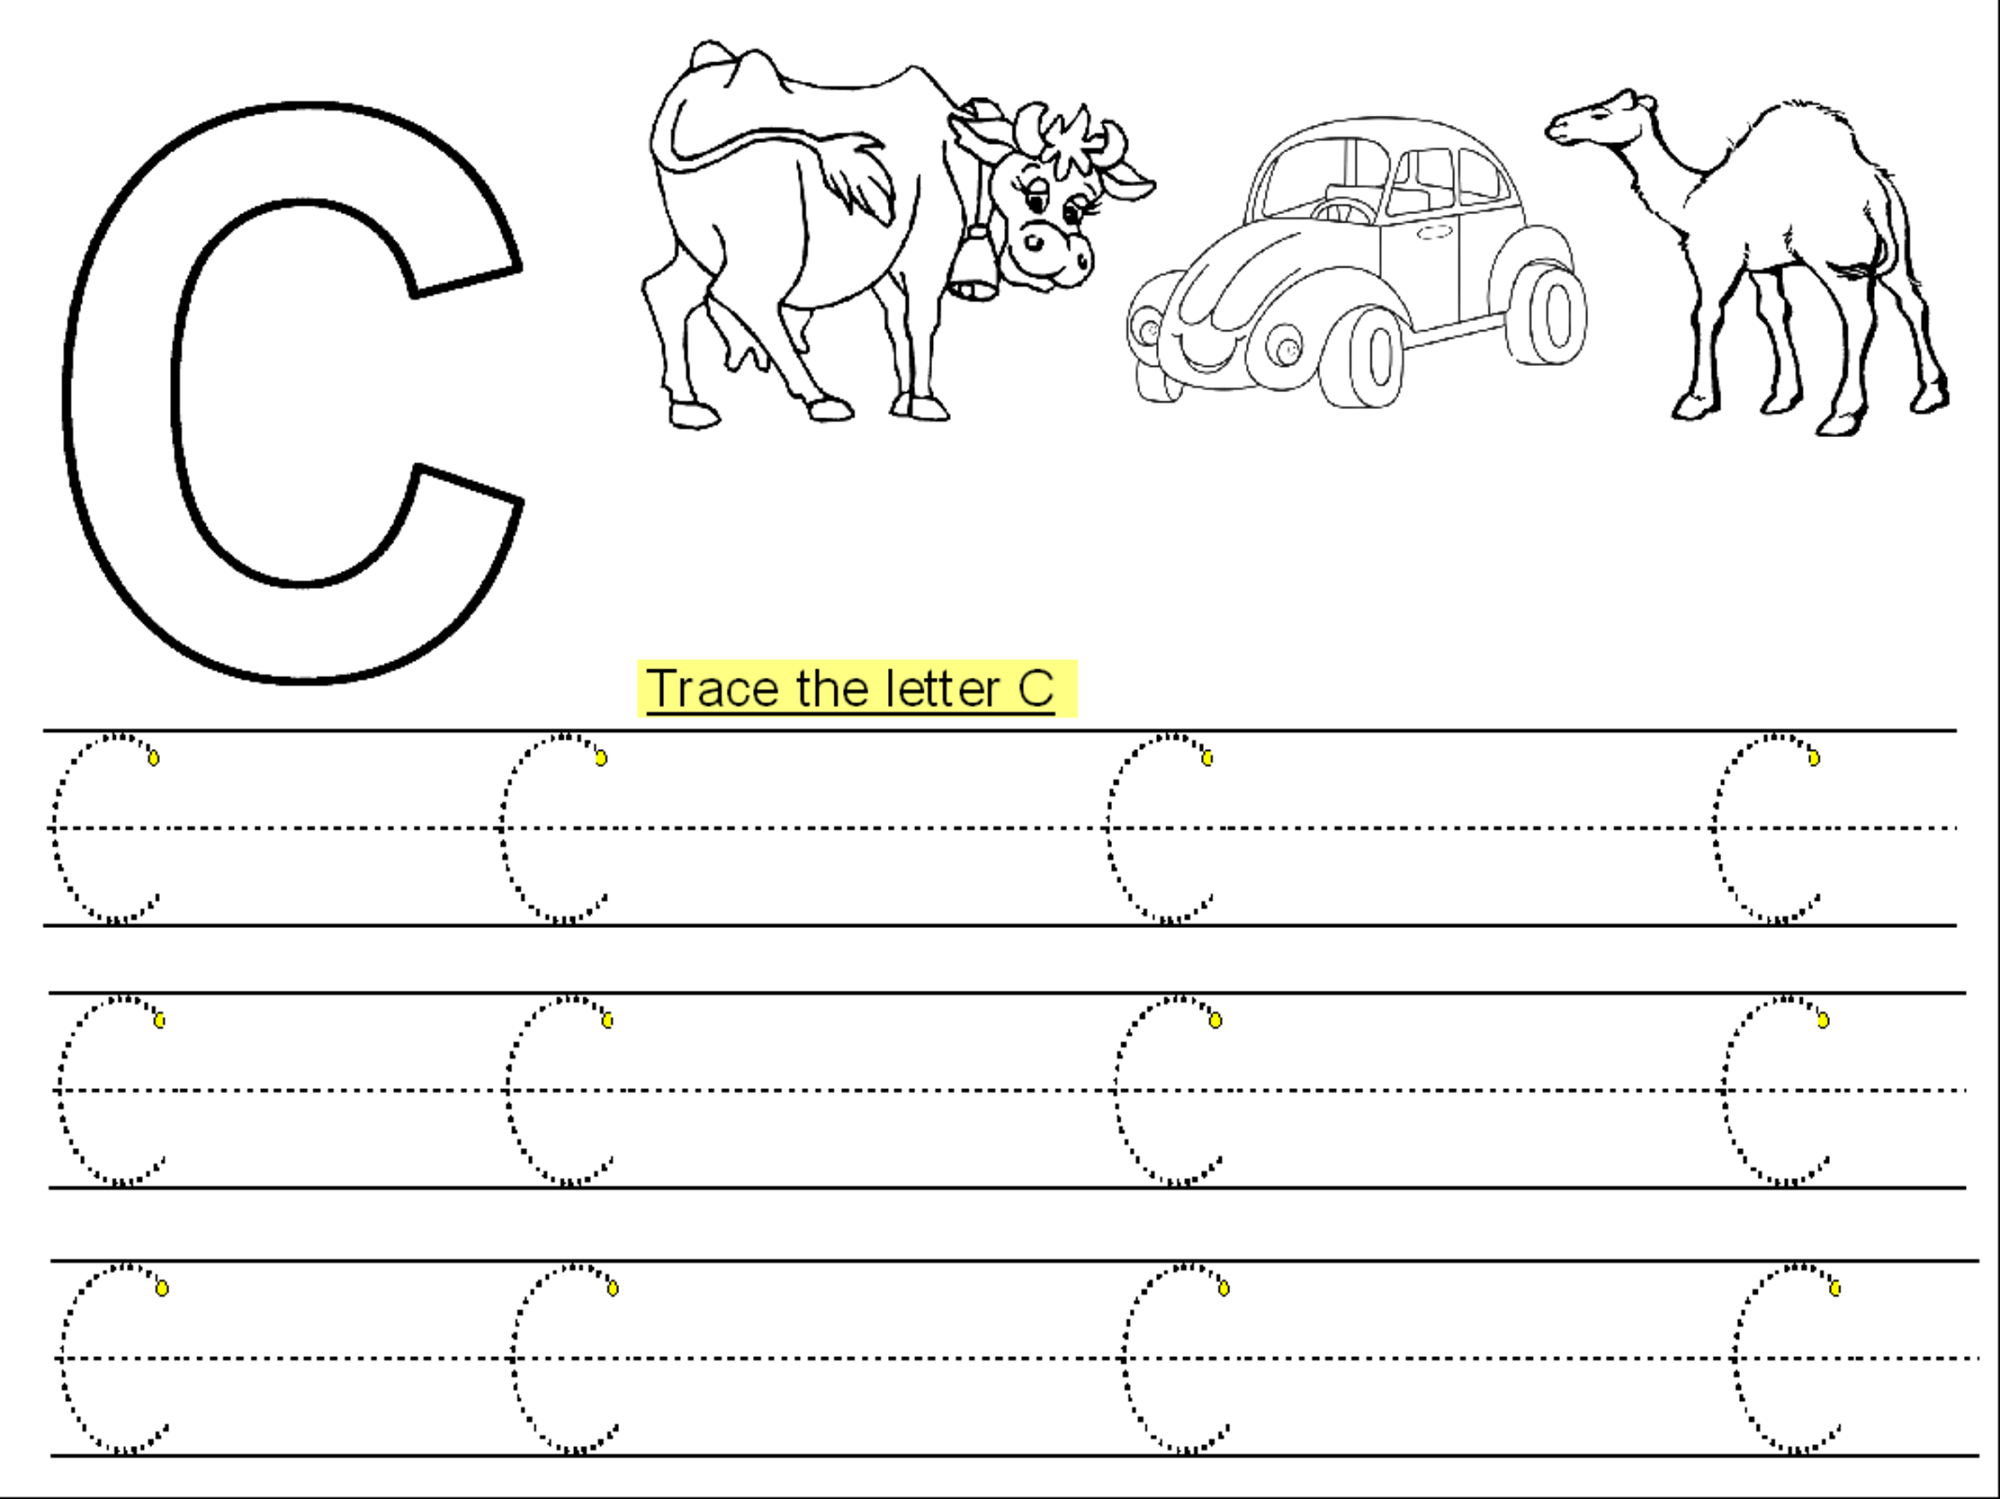 trace-letter-c-worksheet